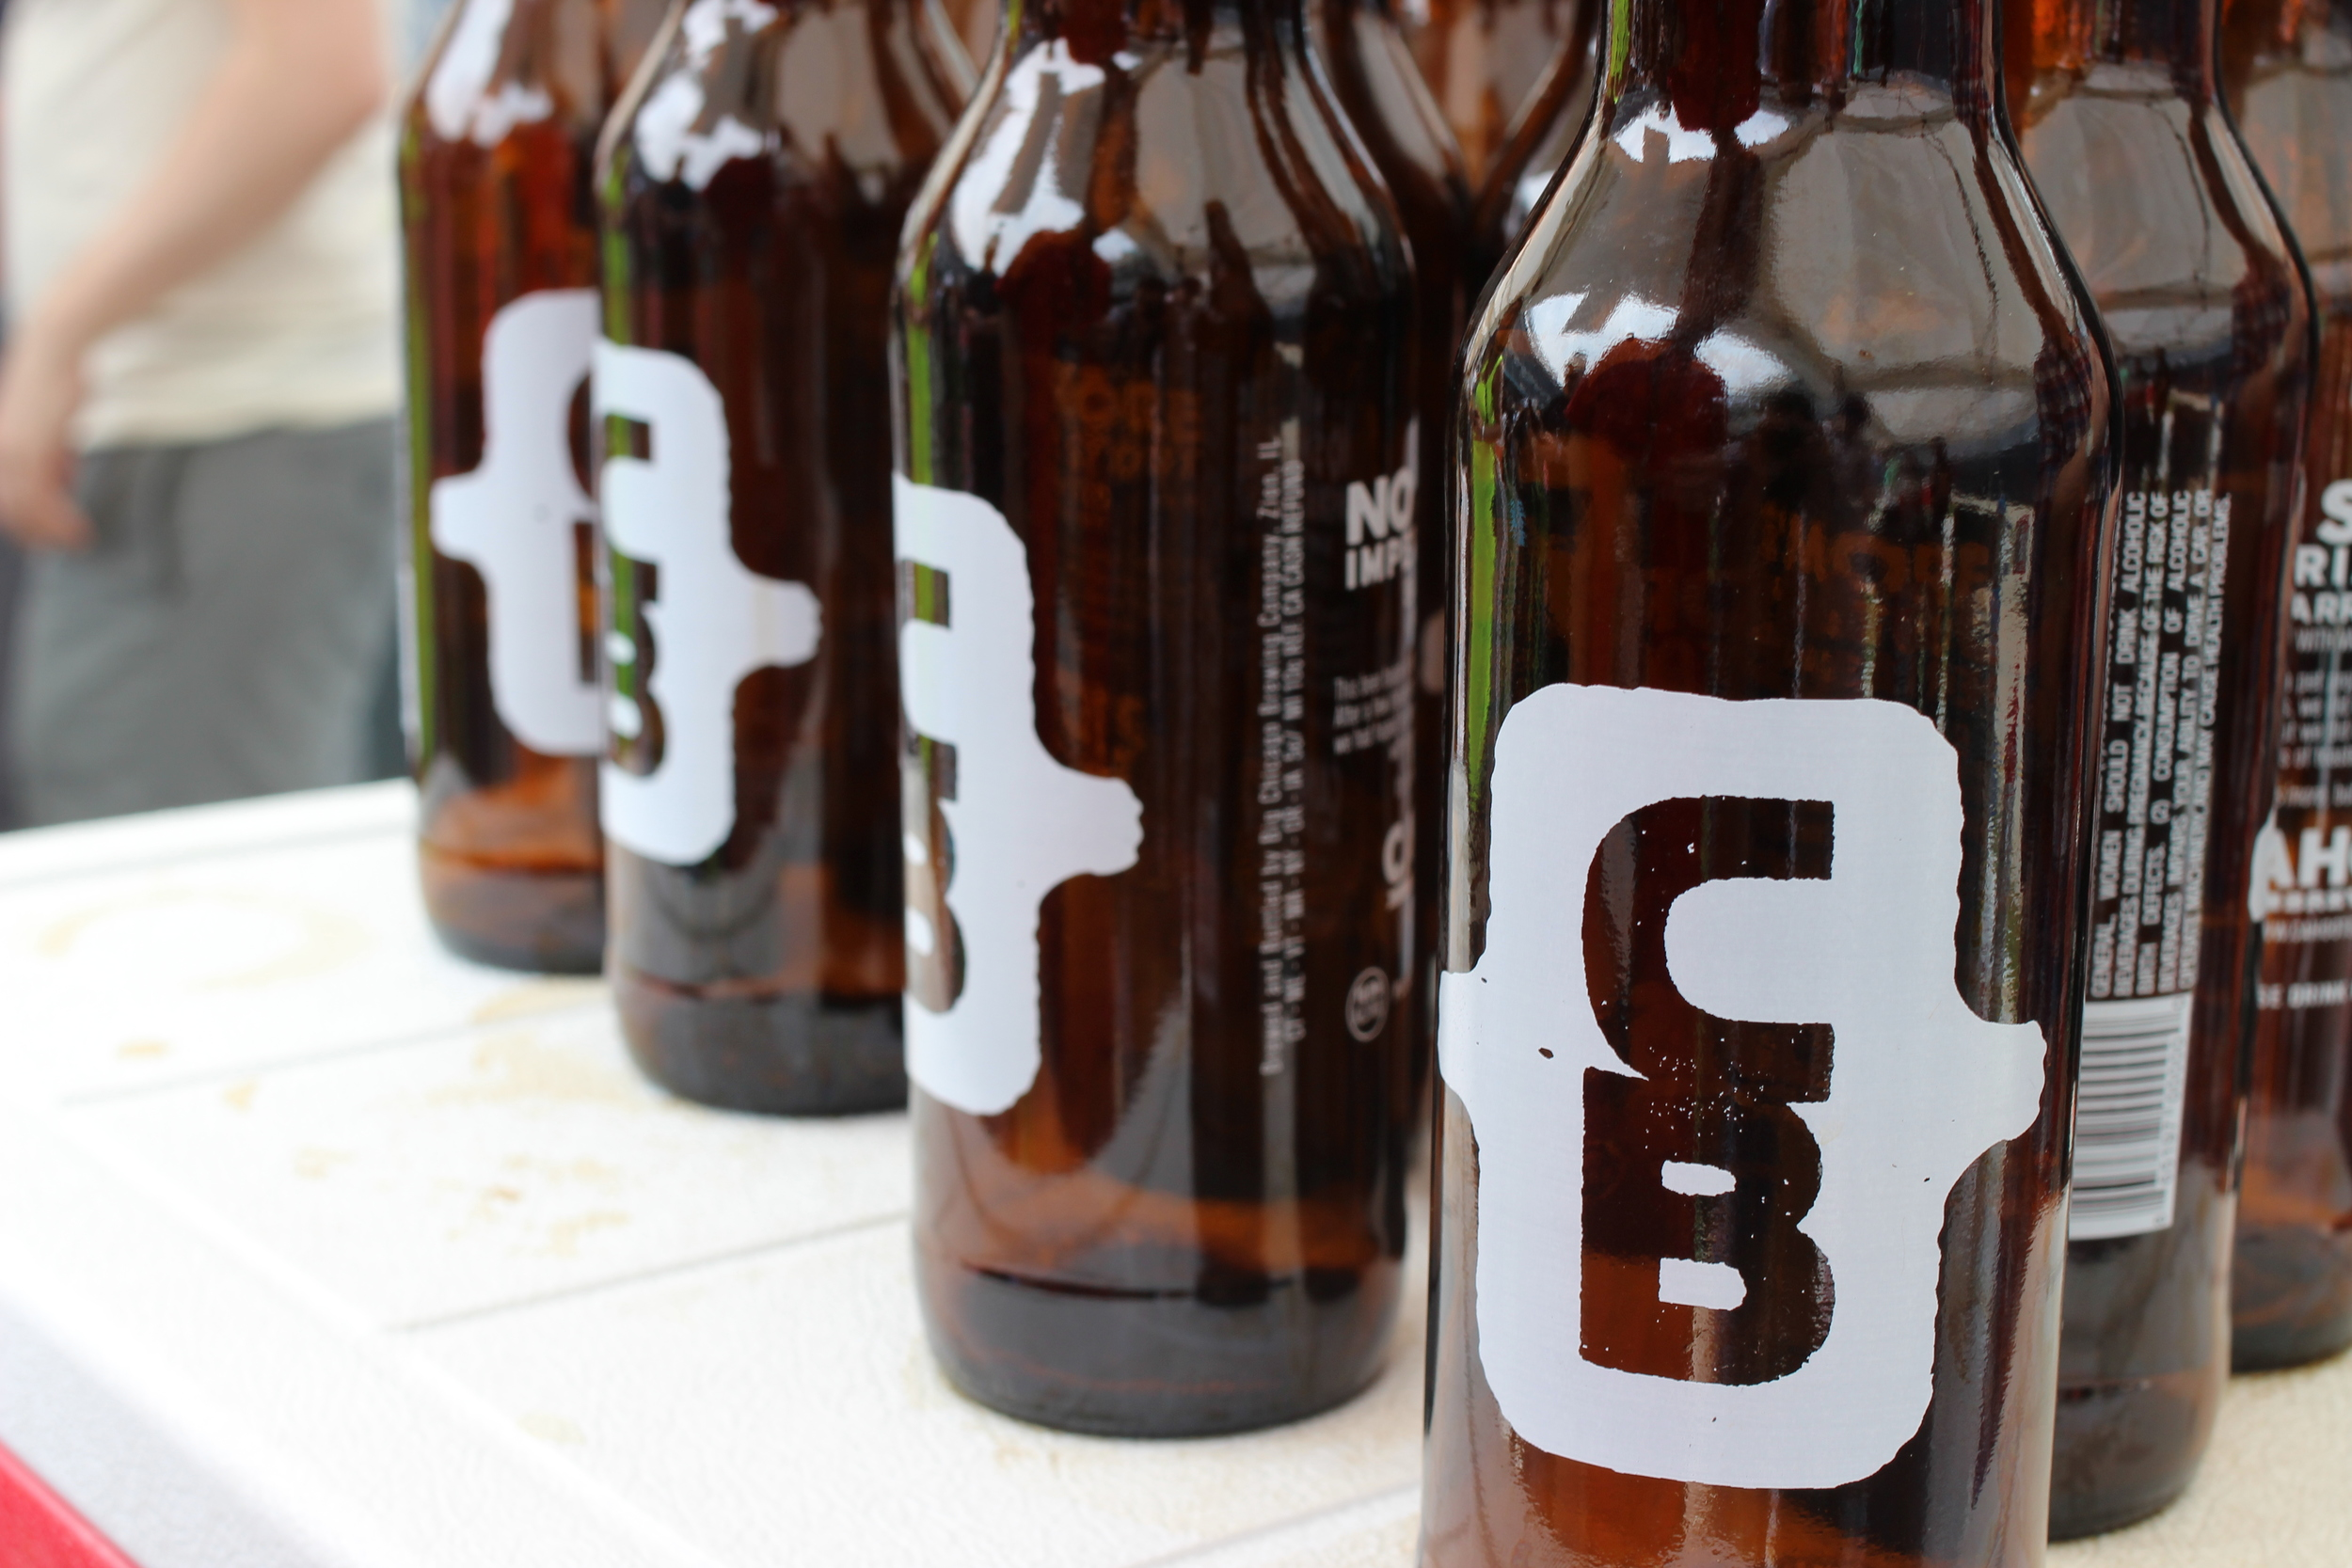 Cahoots Brewing No S'more Imperial Stout bombers